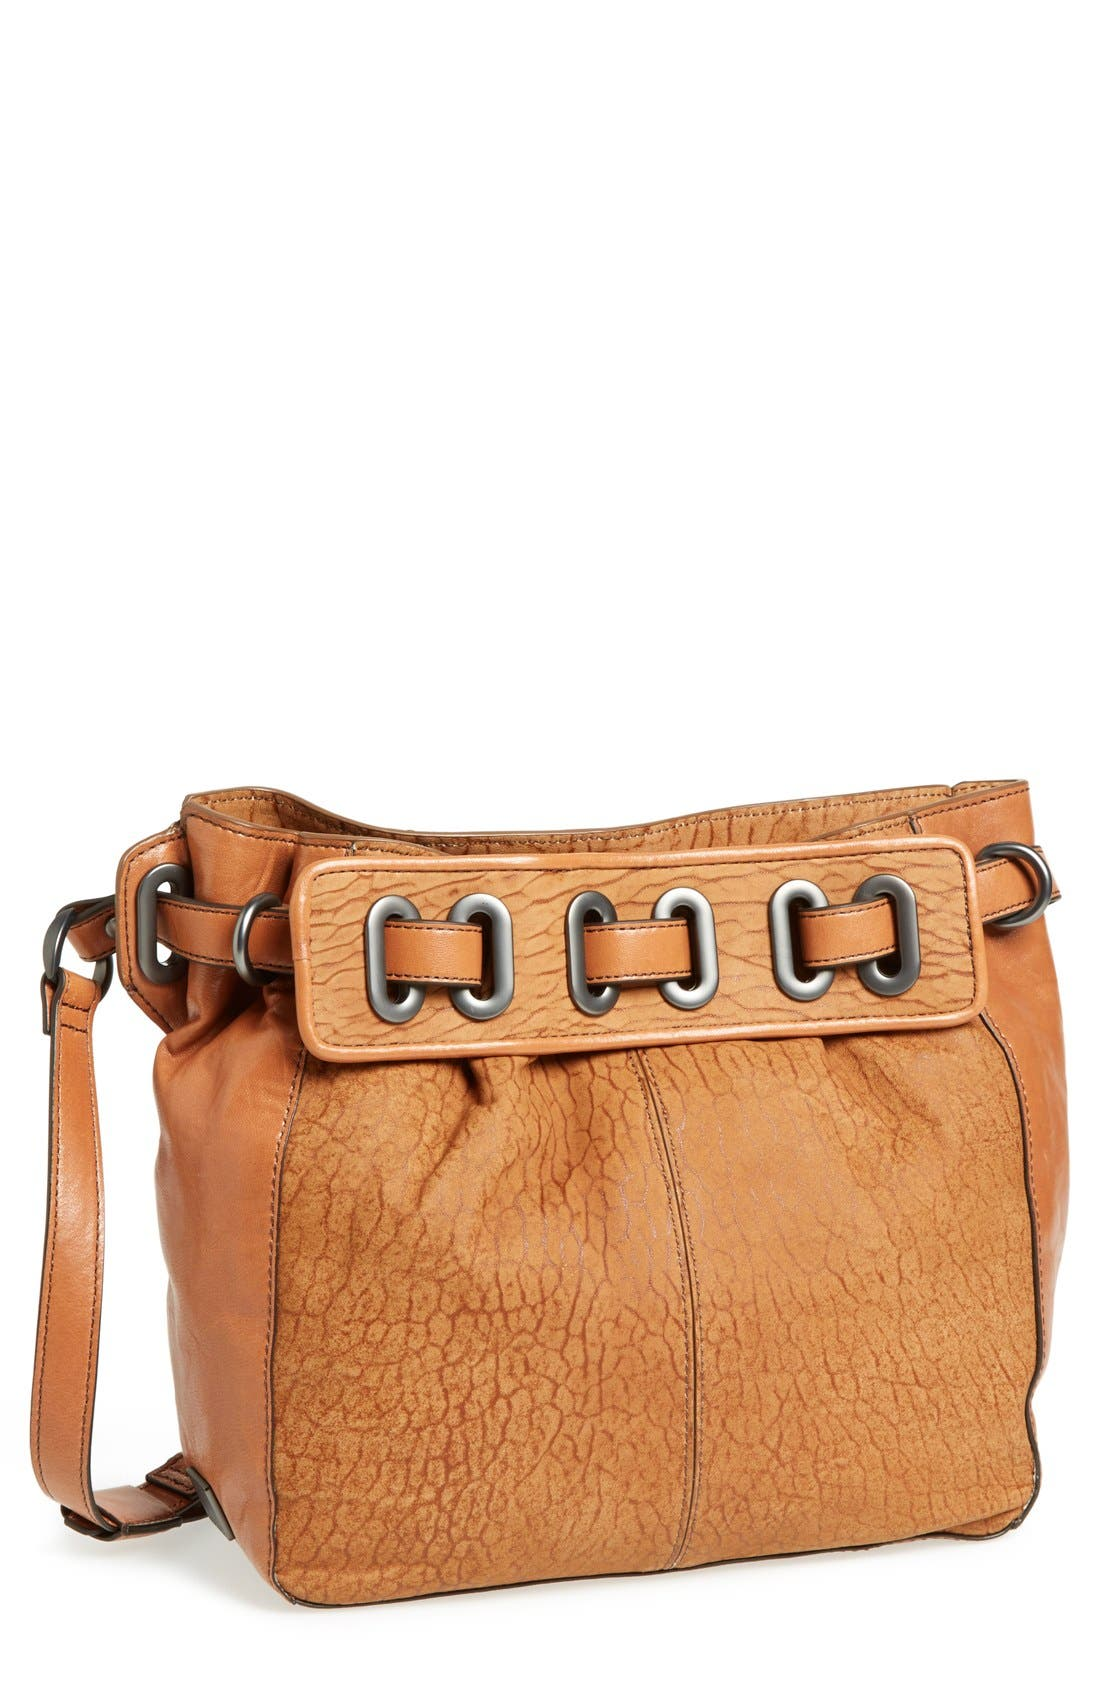 Alternate Image 1 Selected - Kooba 'Jordyn' Crossbody Bag